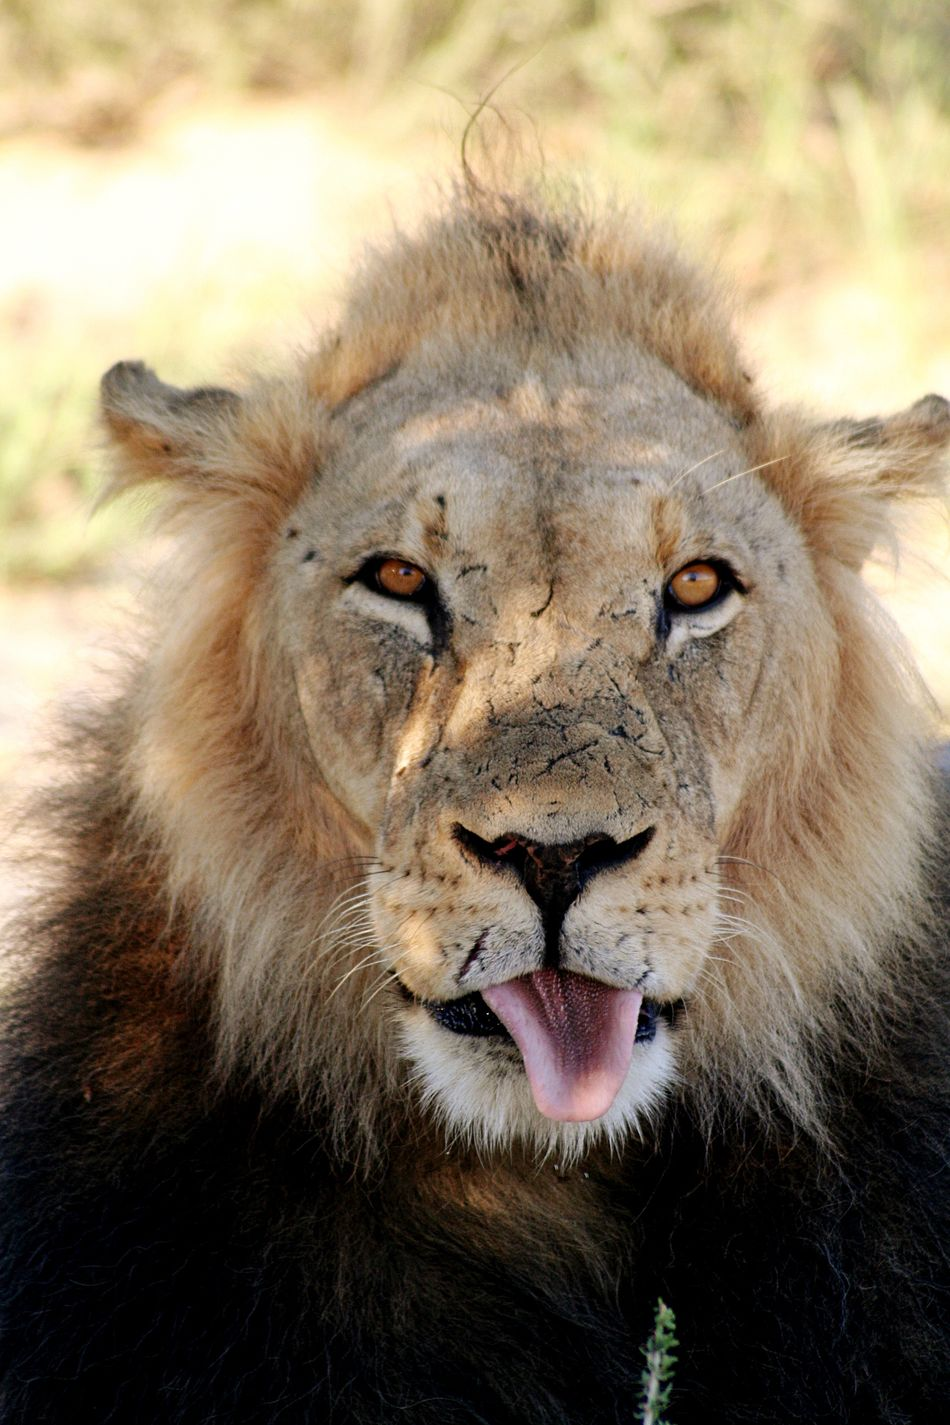 One Animal Animal Themes Animals In The Wild Portrait Mammal Animal Wildlife No People Outdoors Lion - Feline Close-up Day Safari Animals Nature Baboon scar Scary Face Scars Scarface Looking At Camera Tounge Out  Tounge Action Tounge Lion King  Natural Parkland Beauty In Nature Animals In The Wild